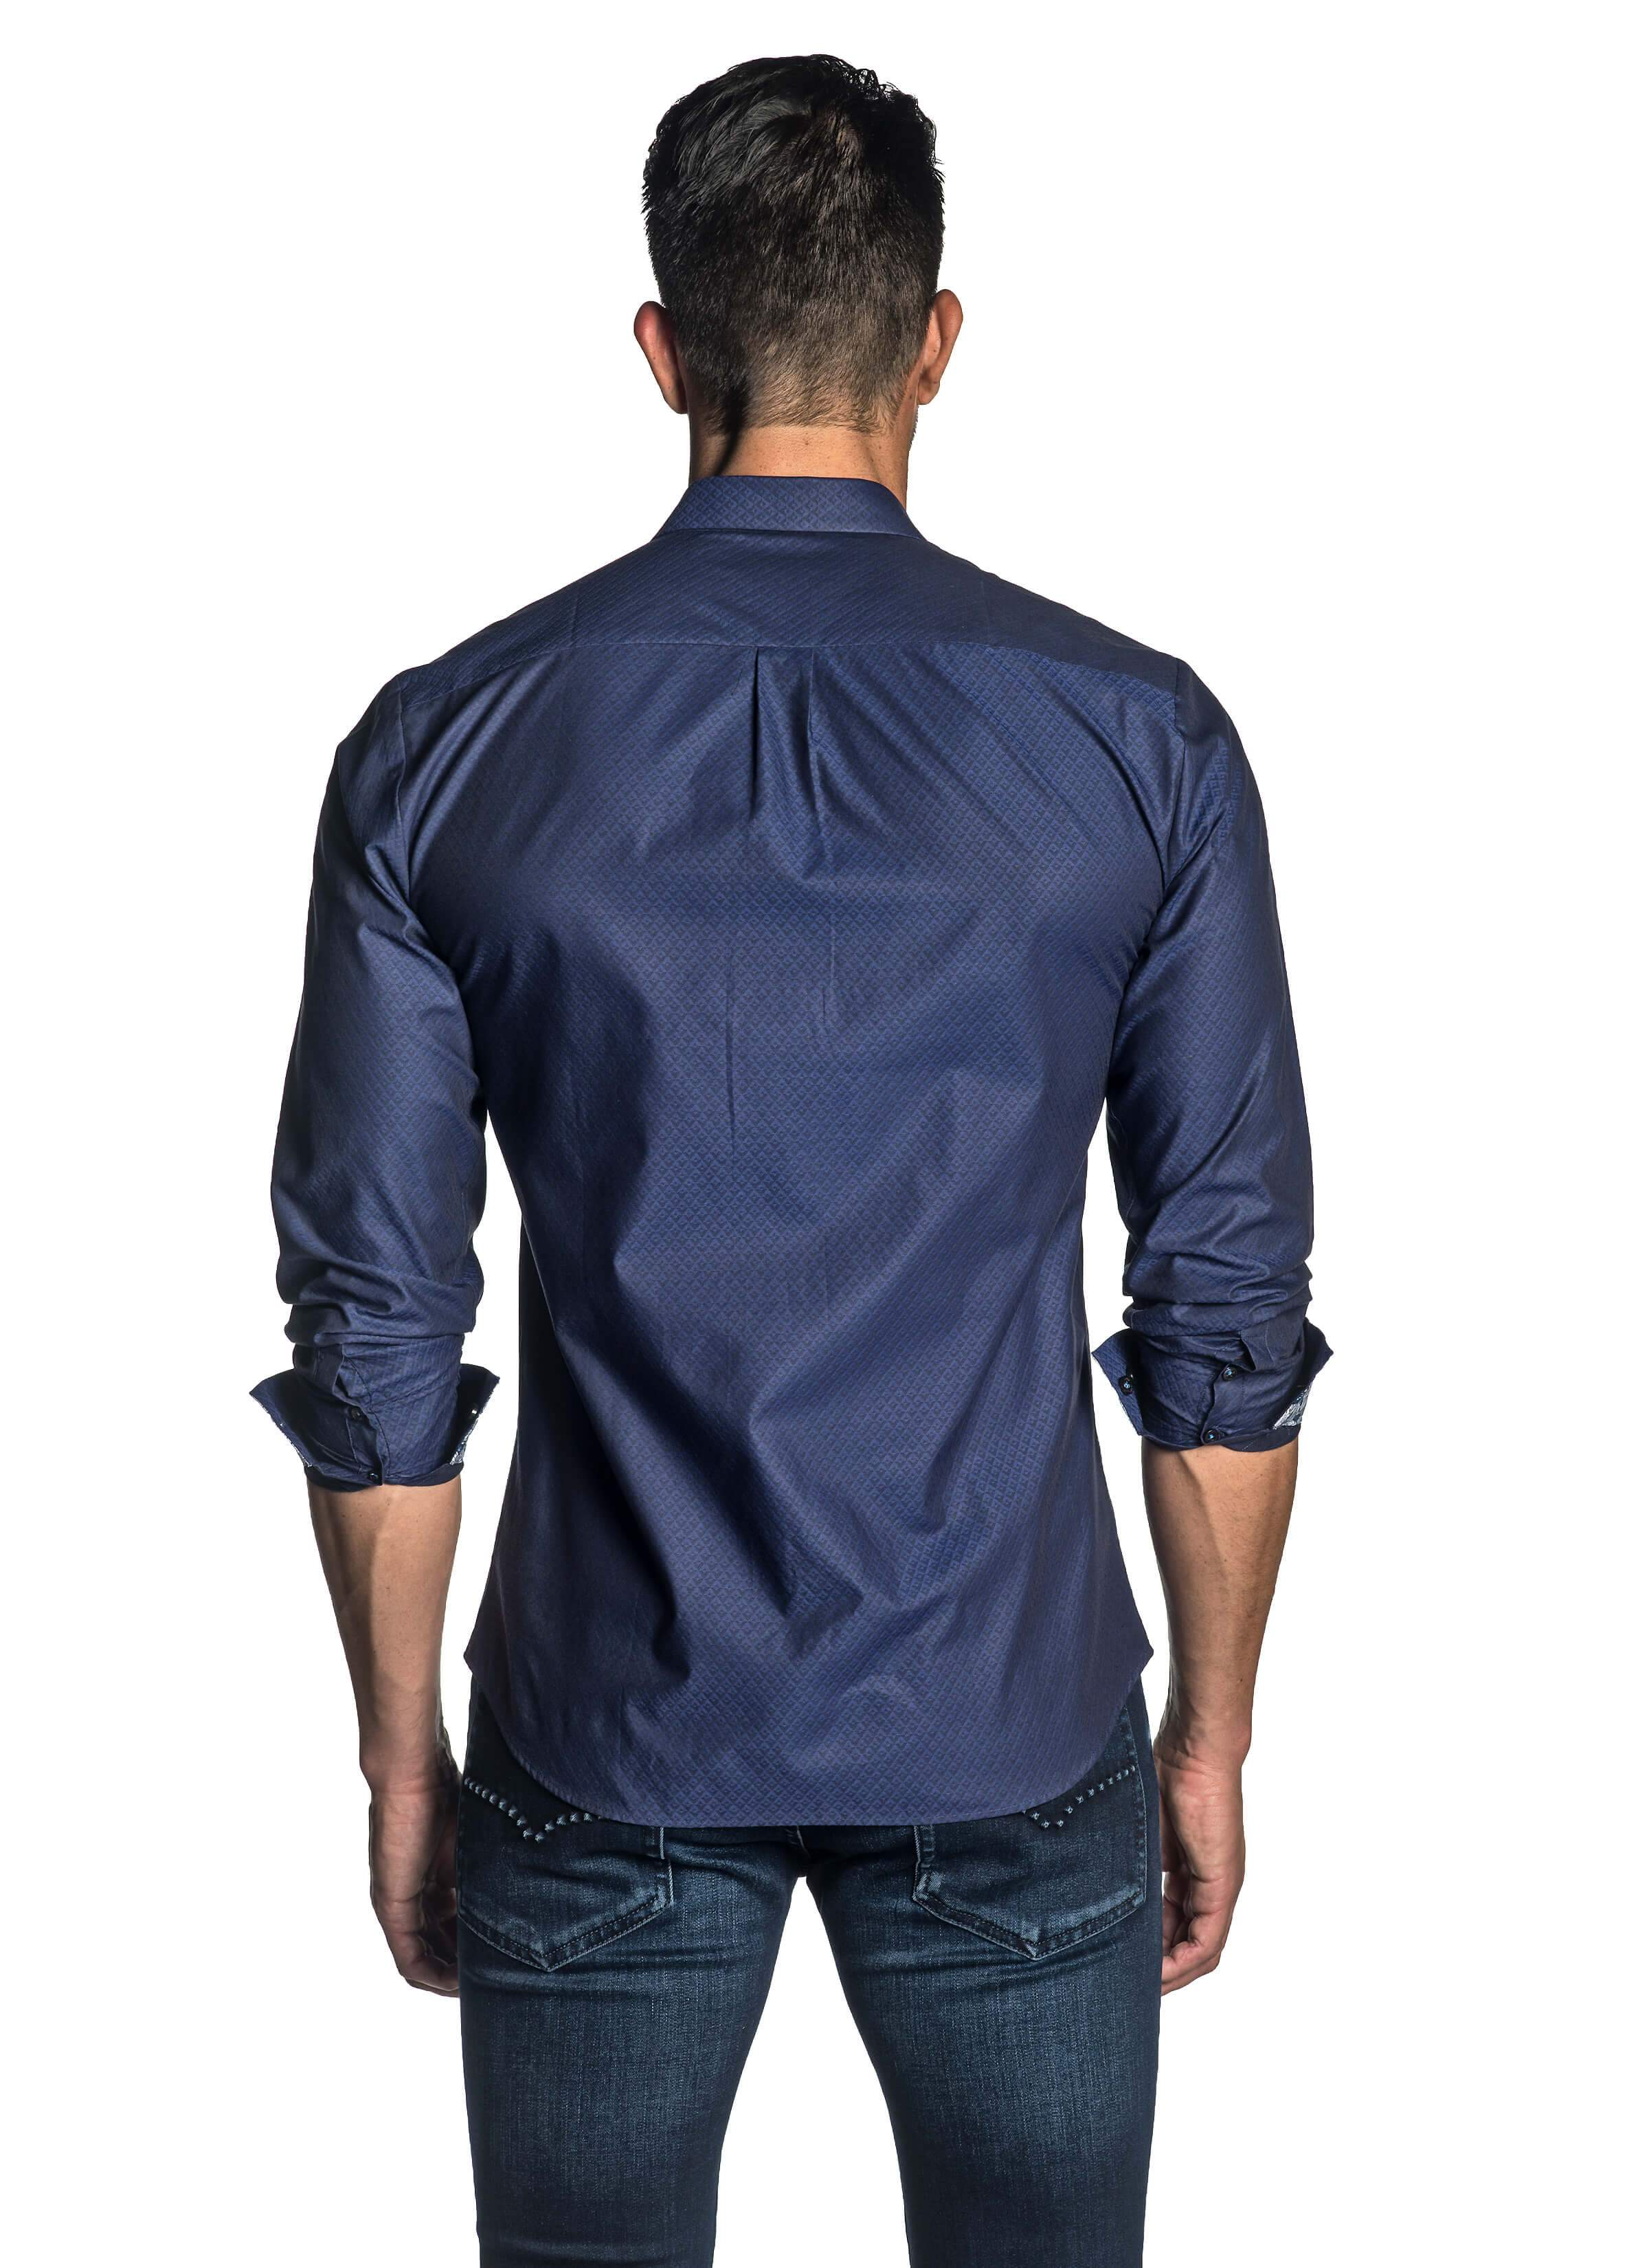 Navy Jacquard Shirt for Men - back AH-T-7040 - Jared Lang